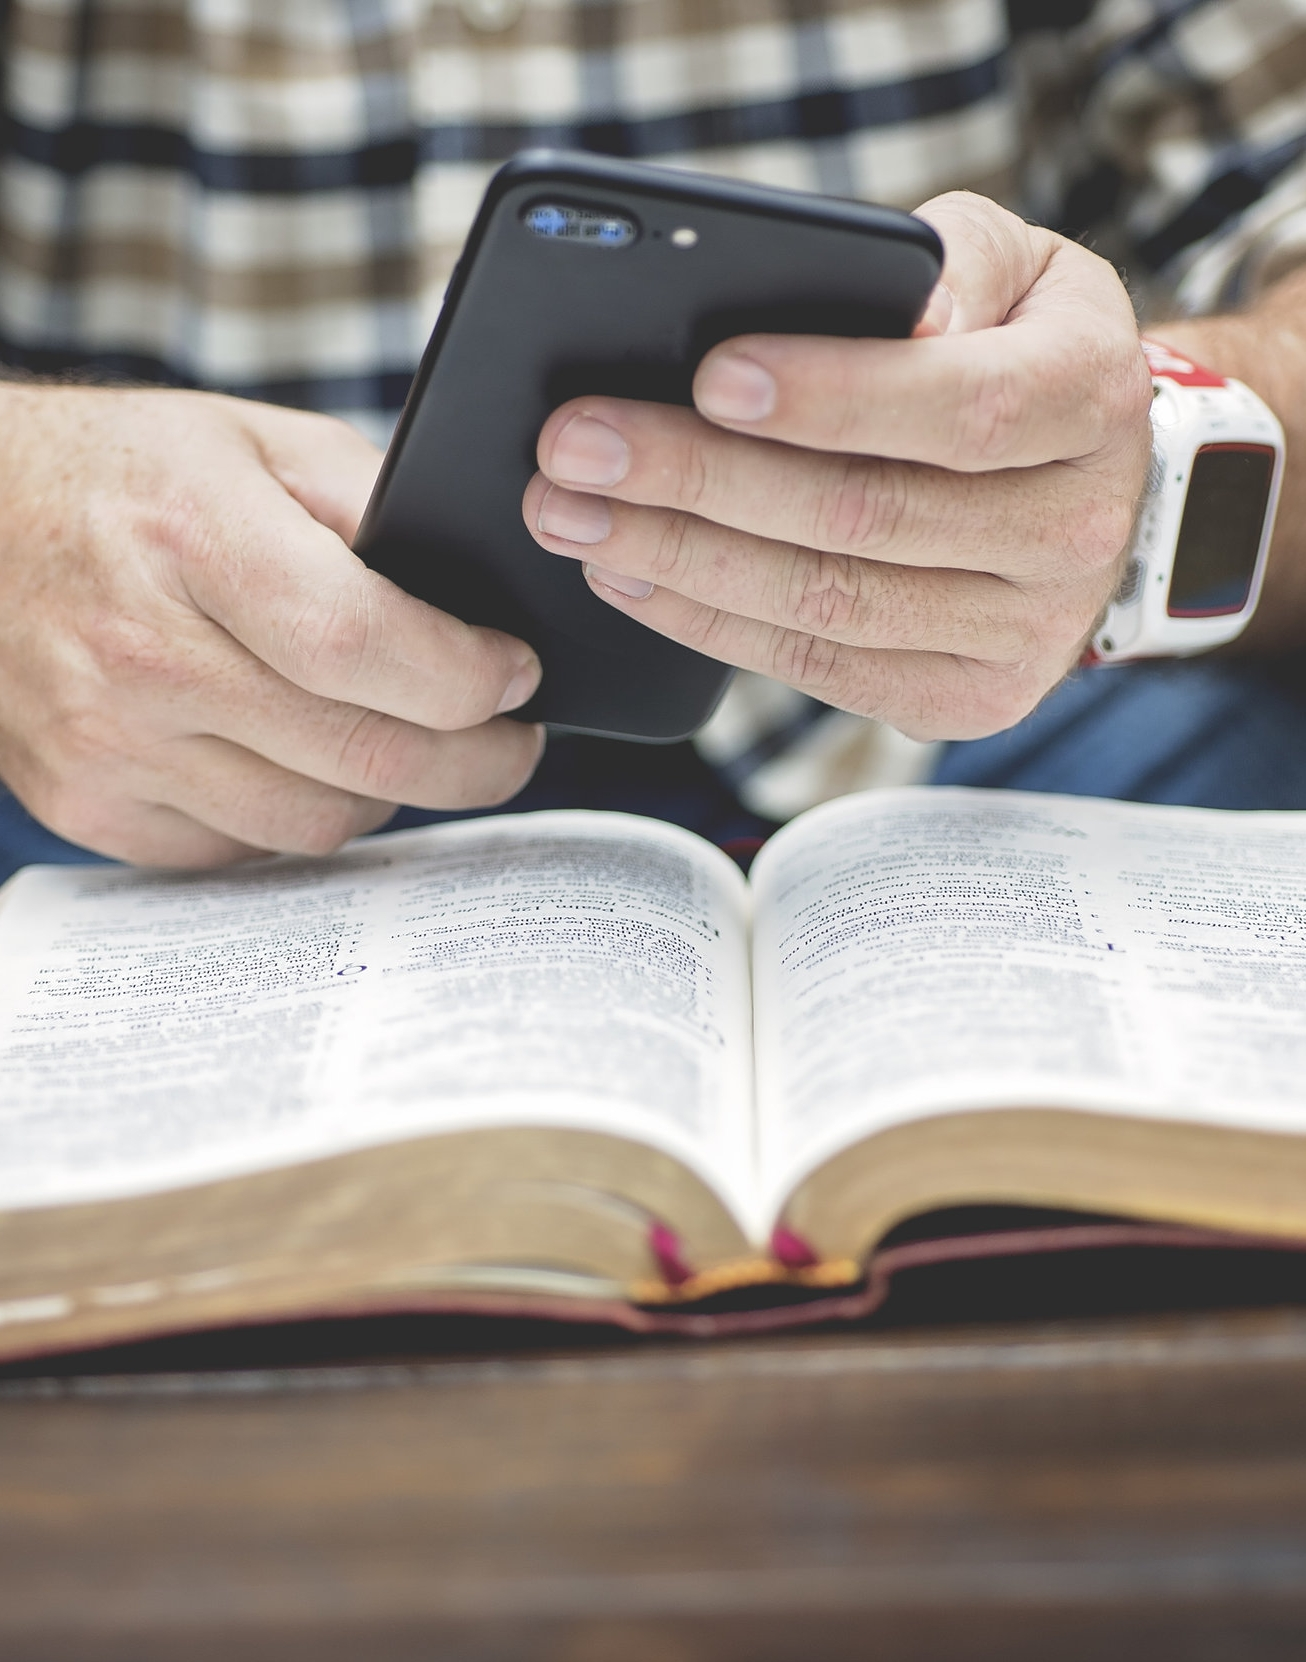 man texting on iphone over bible.jpg